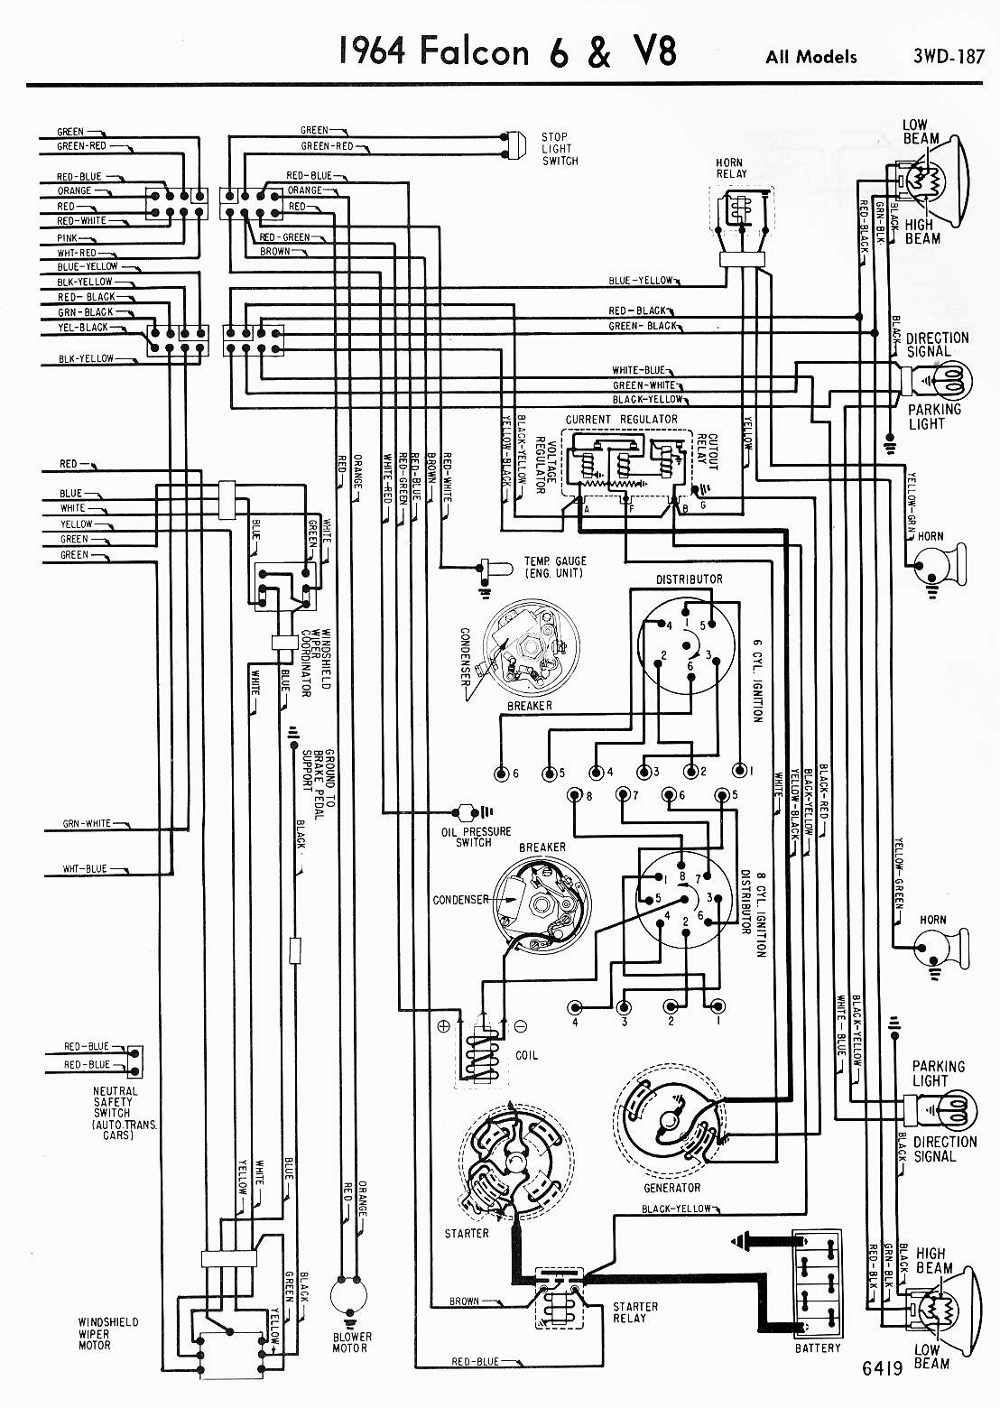 small resolution of 1964 ford falcon wiring diagram wiring diagrams of 1964 ford 6 and v8 falcon all models part 2